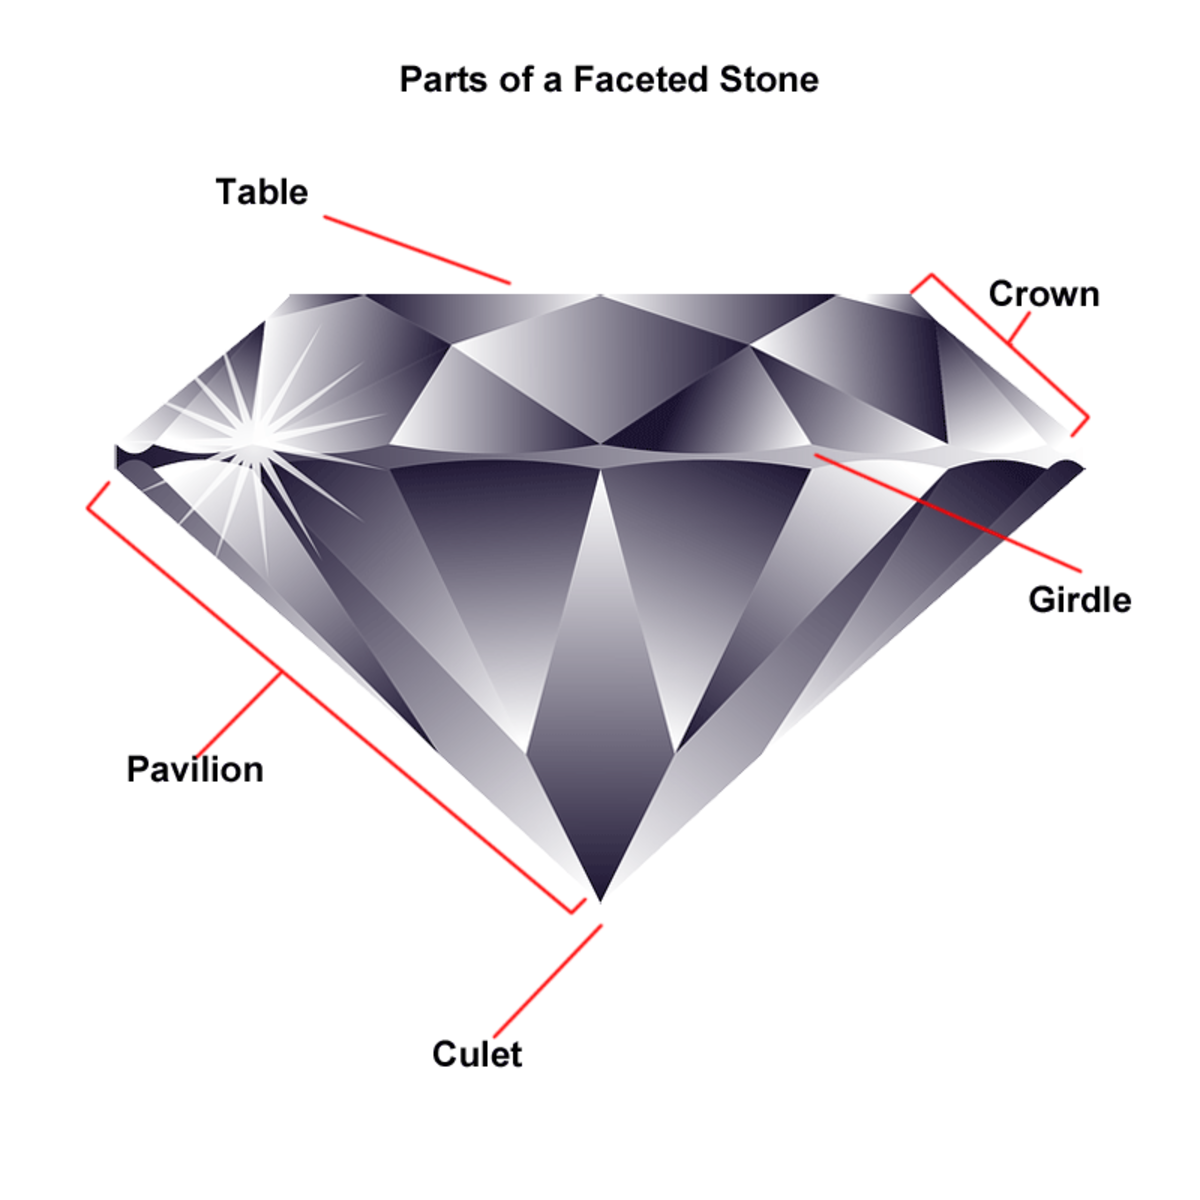 Diagram showing the parts of a faceted gemstone, adapted from a Public Domain image on Pixabay by Margaret Schindel